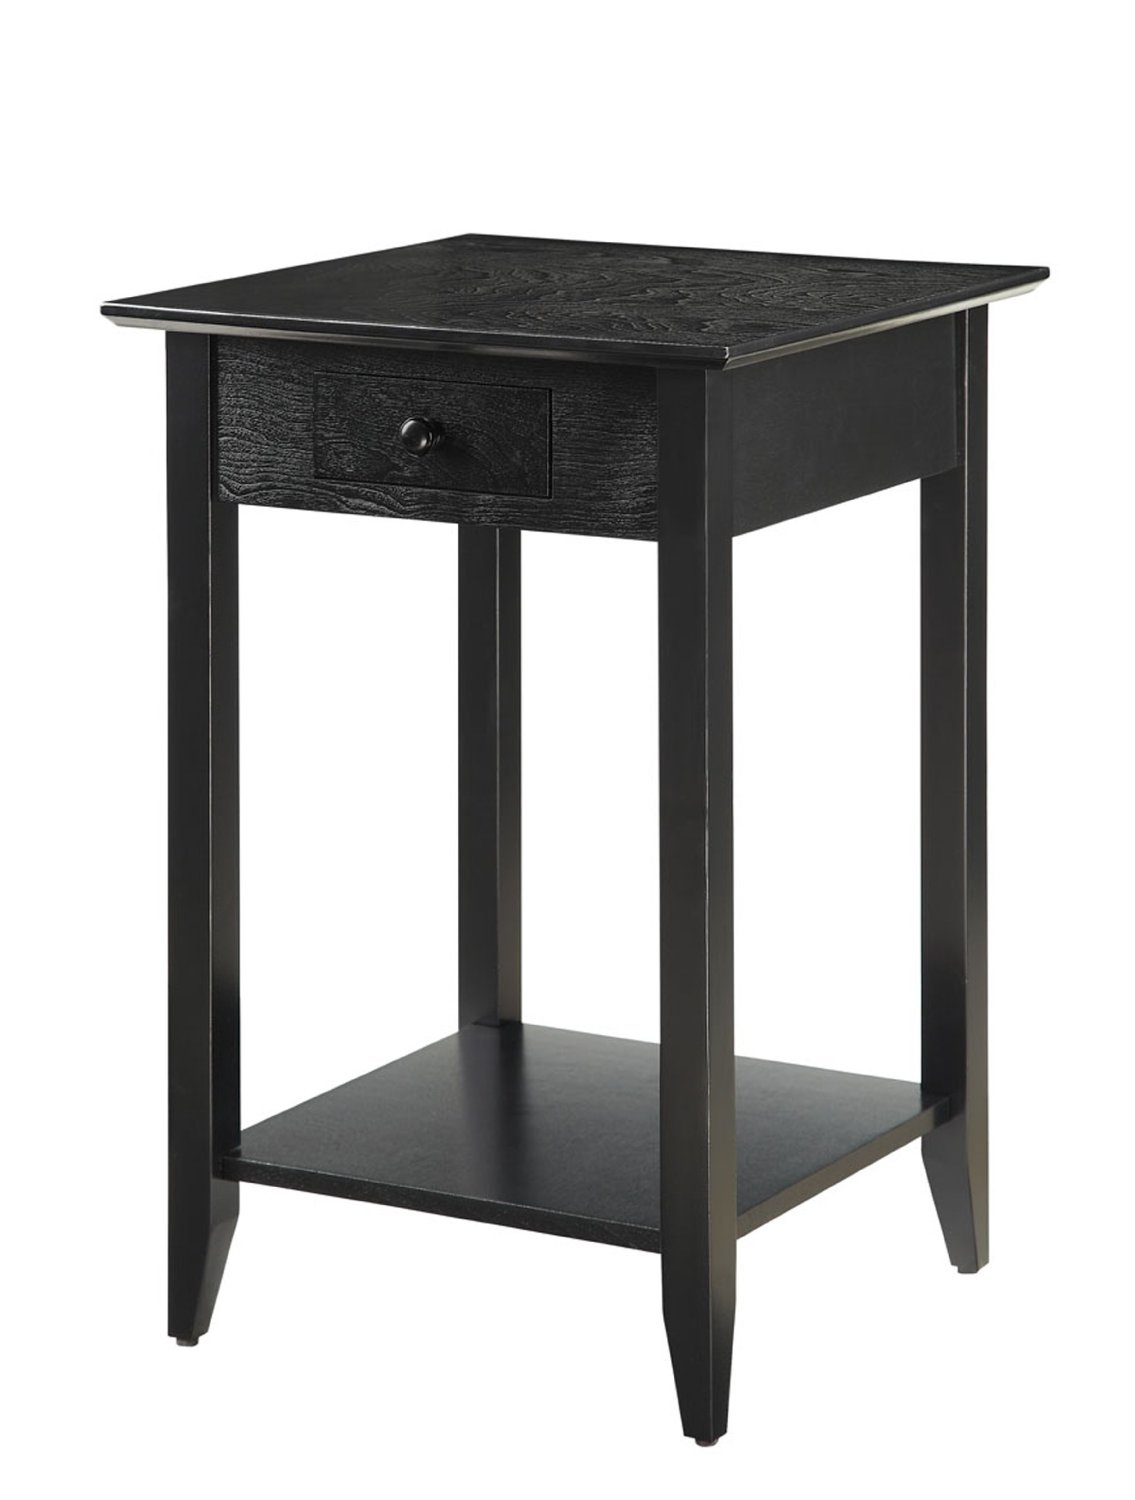 table - convenience end table.jpg